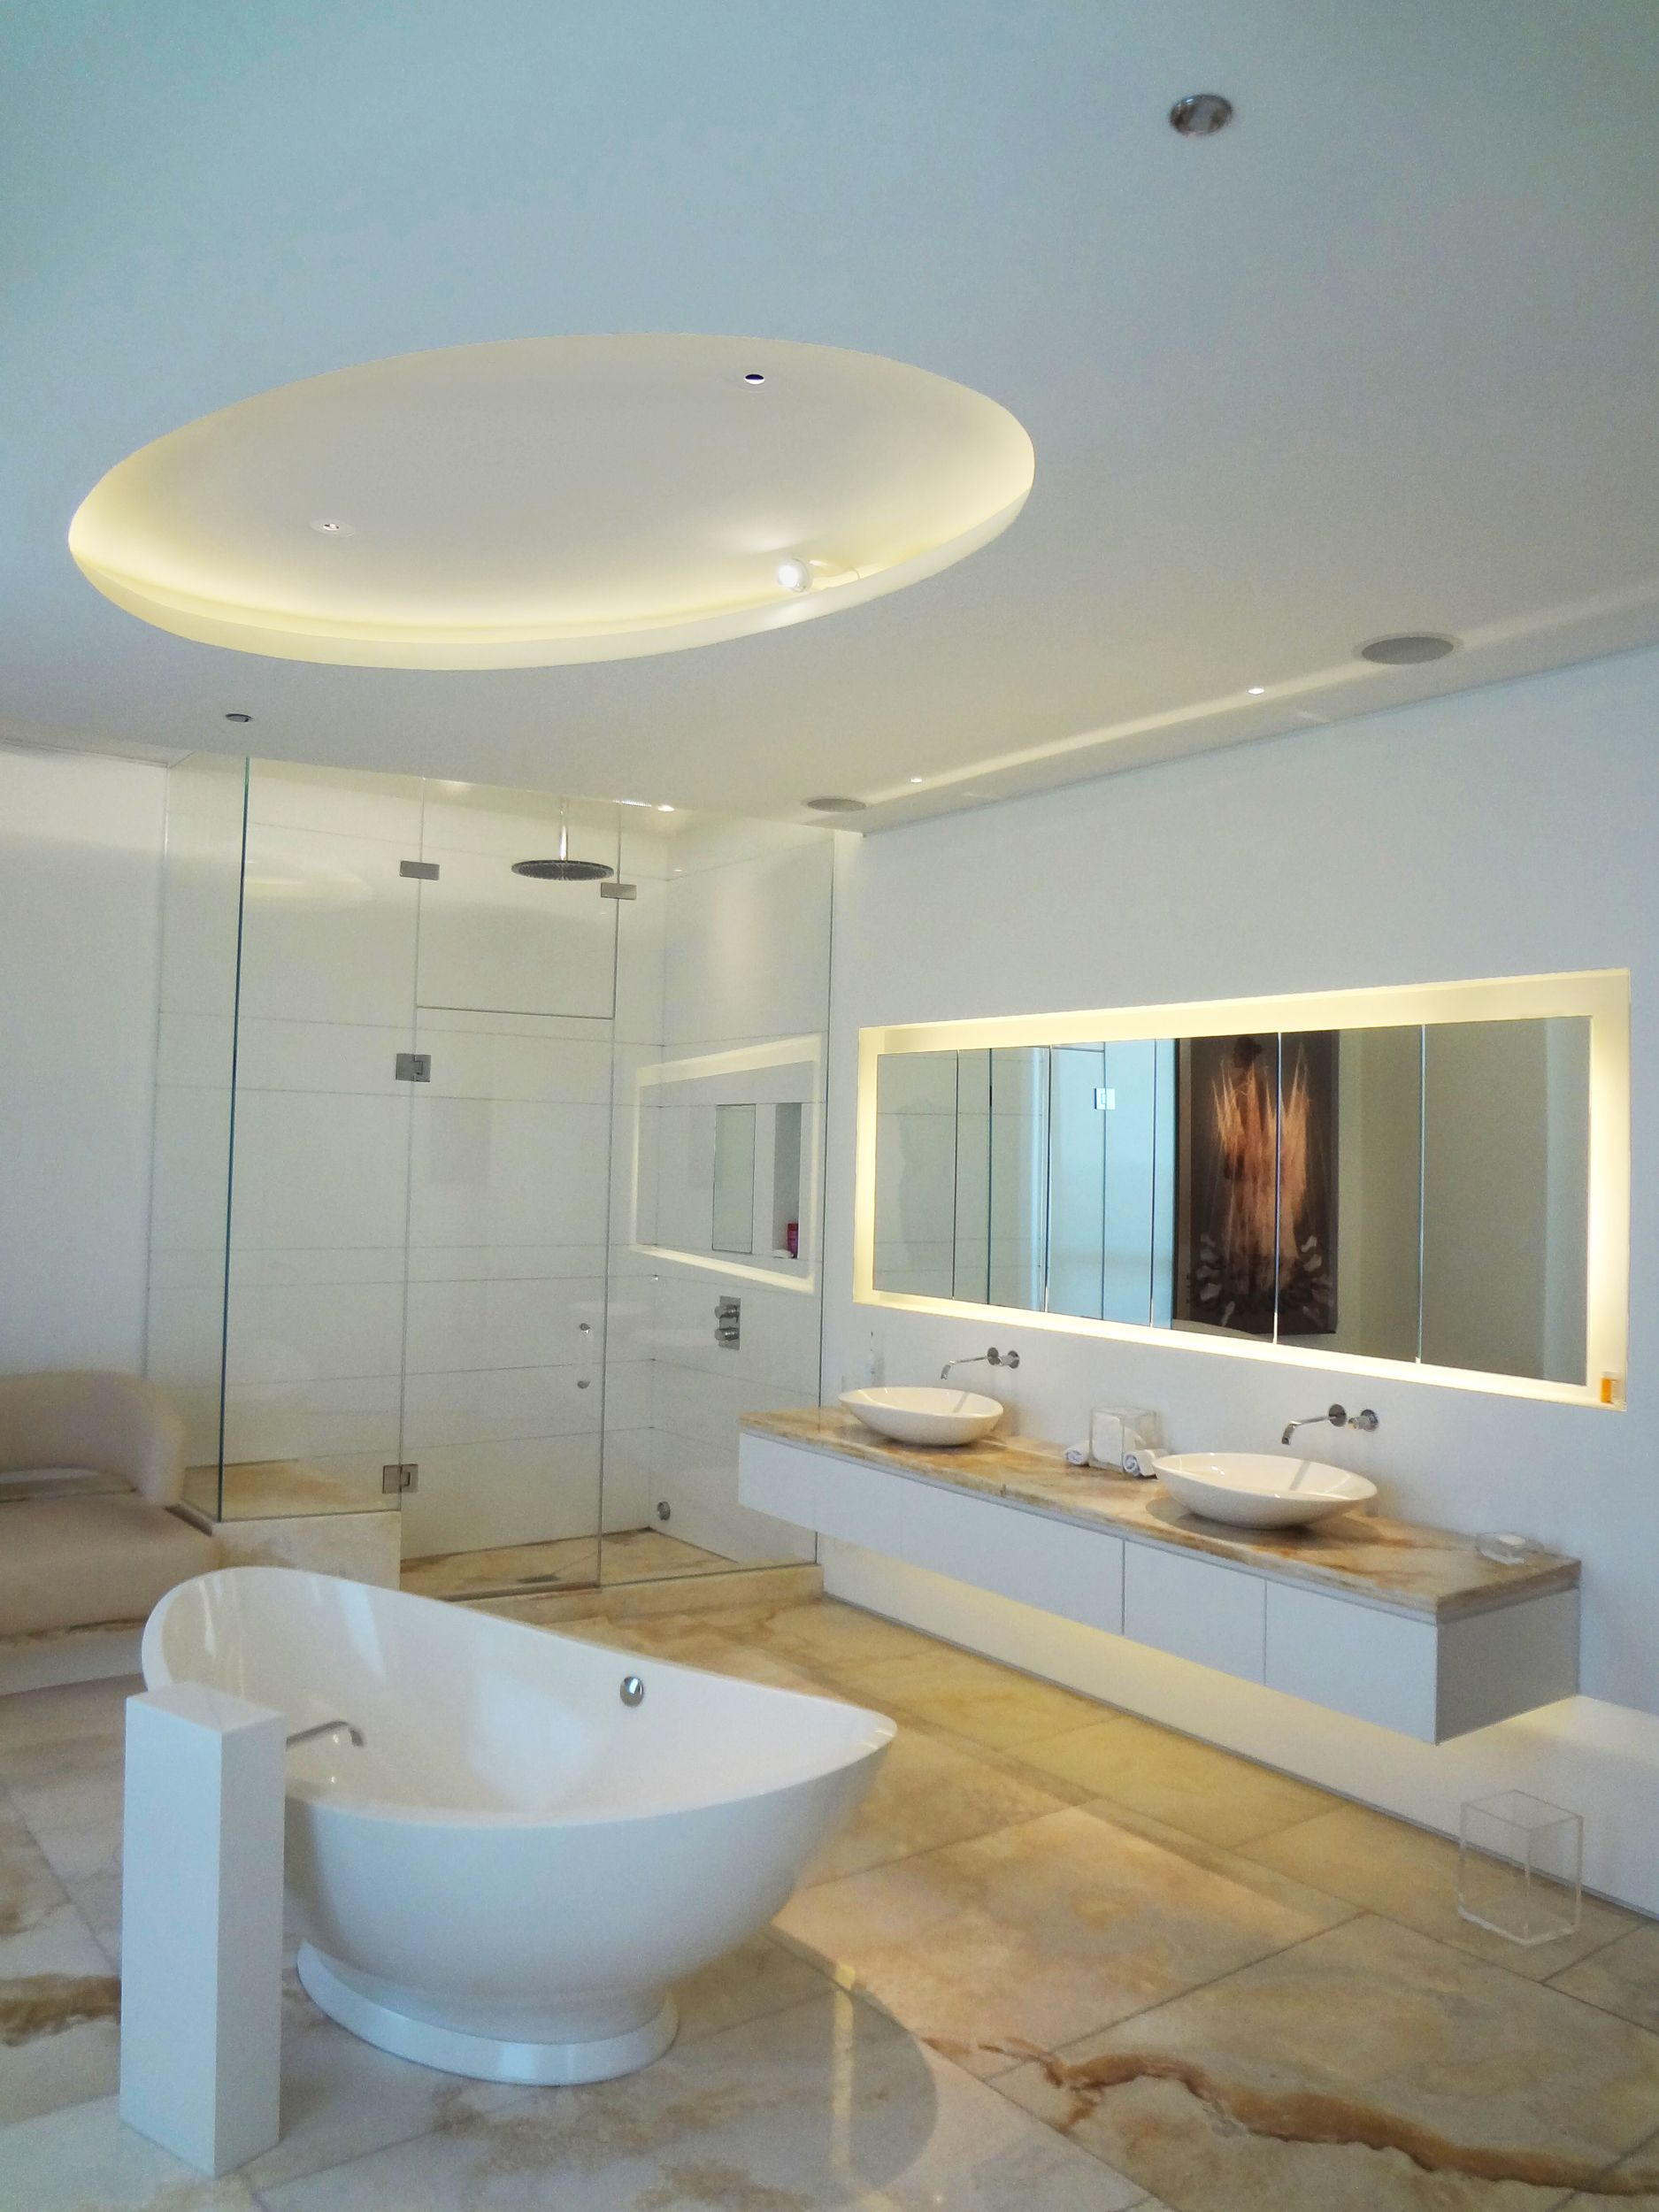 1000 images bathroom lighting images about bath lighting on pinterest cove lighting modern ceiling design and bathroom lighting ideas ceiling